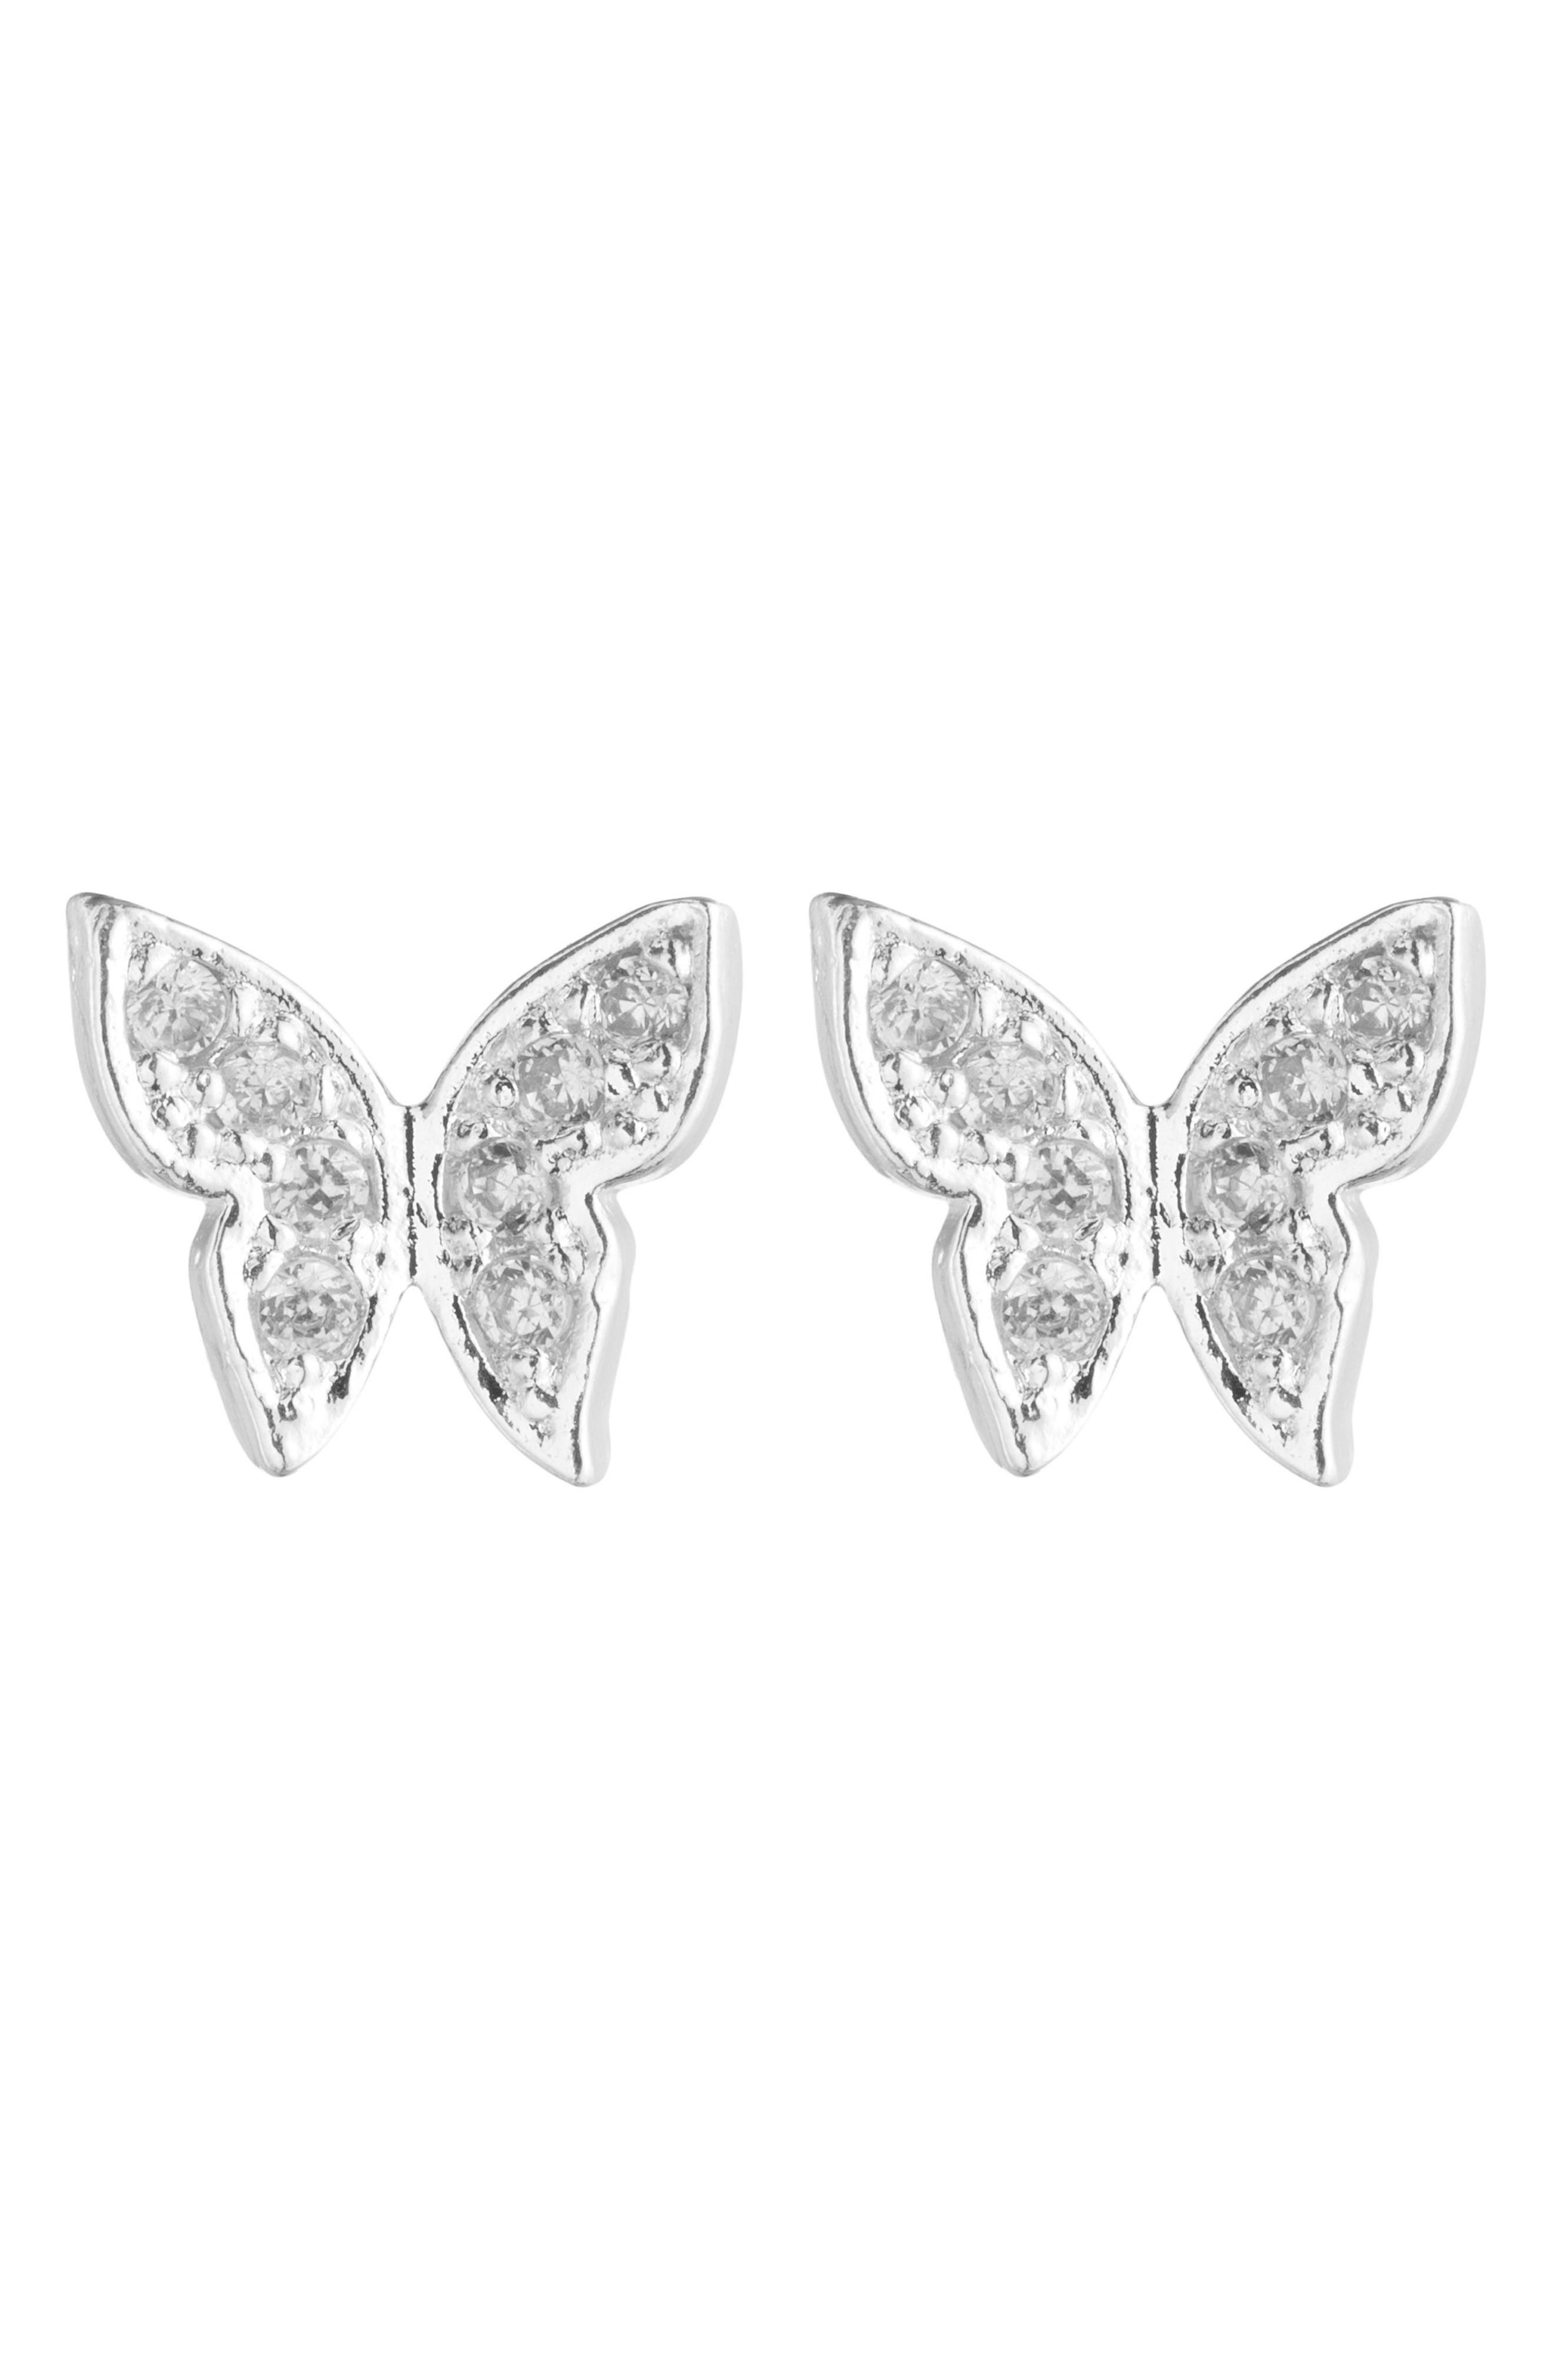 Daydream Believer Stud Earrings,                             Main thumbnail 1, color,                             040